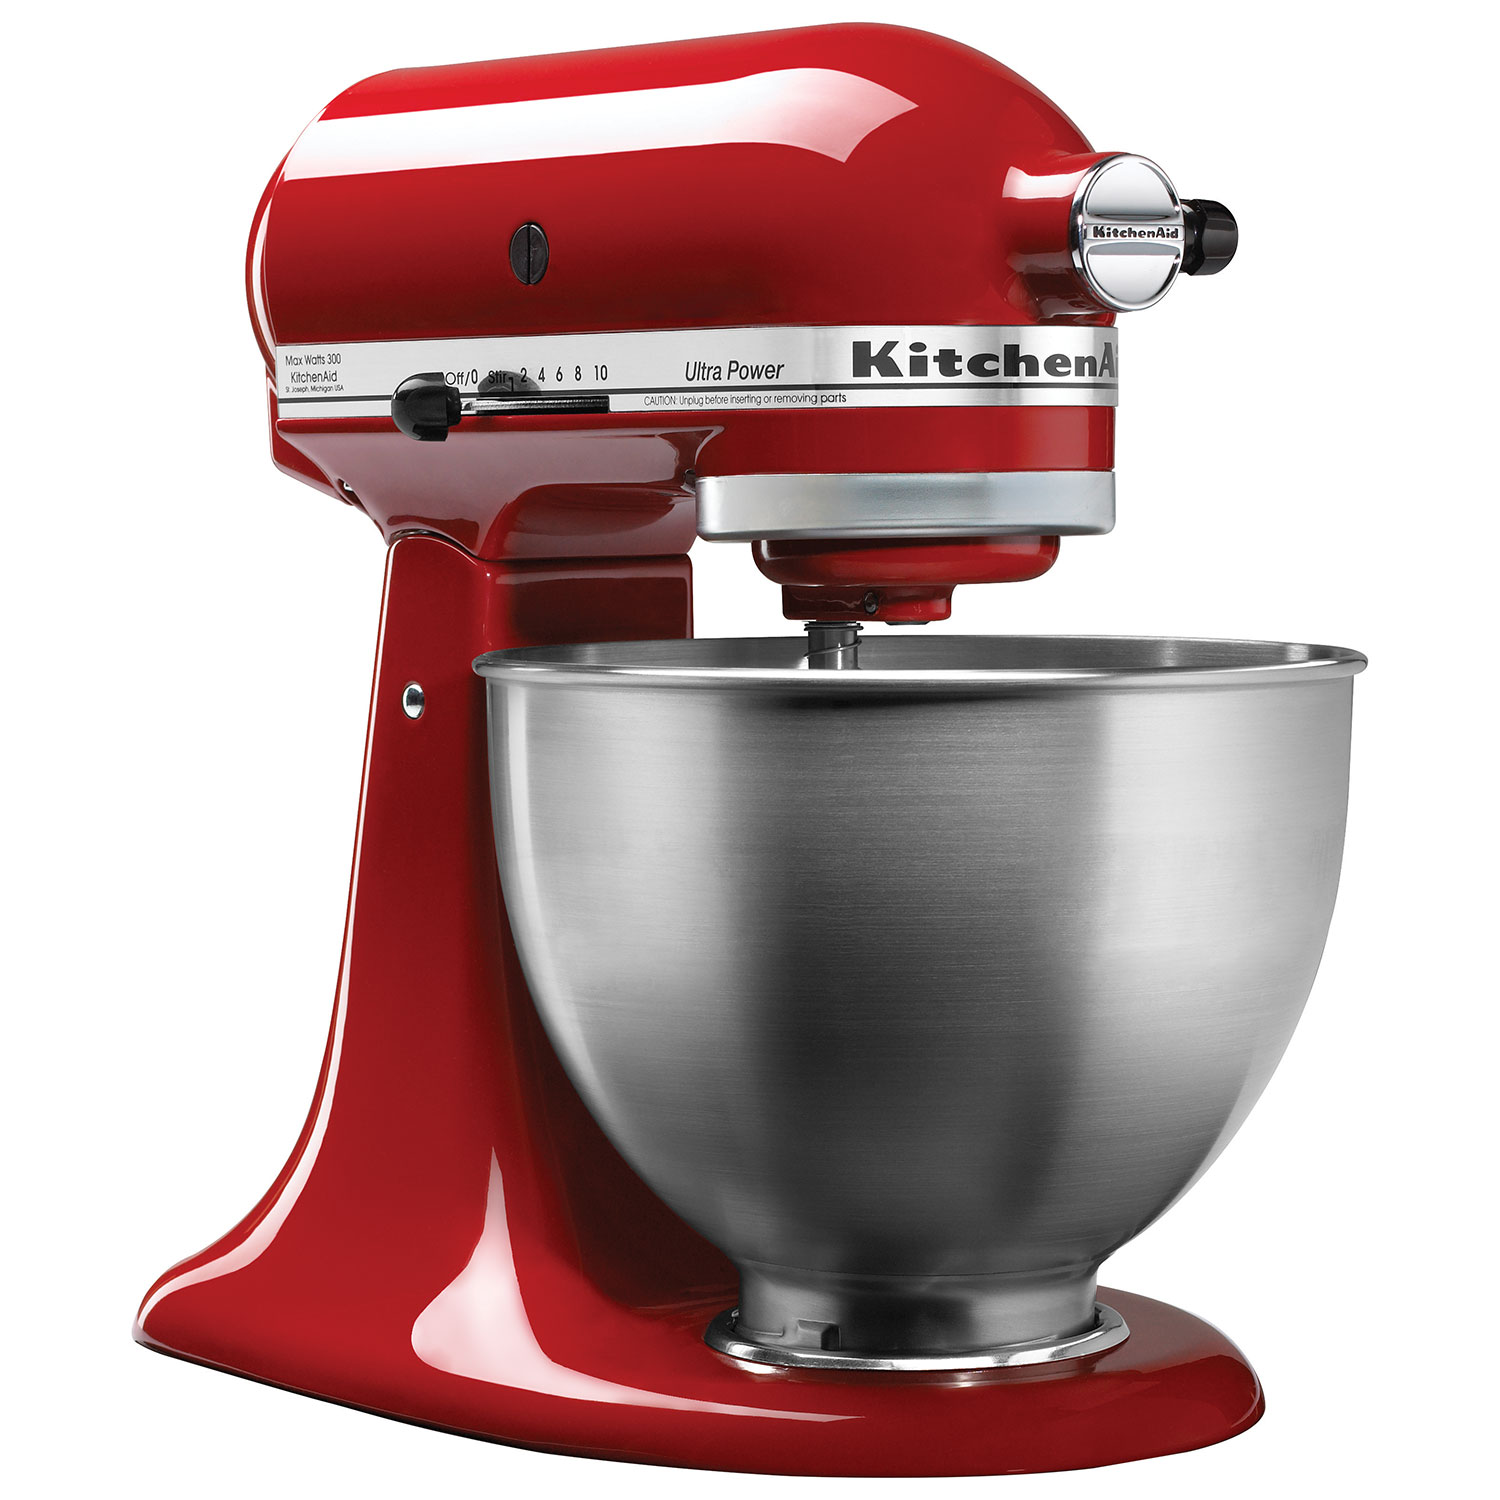 Charming KitchenAid Ultra Power Stand Mixer   4.5Qt   300 Watt   Empire Red : Stand  Mixers   Best Buy Canada